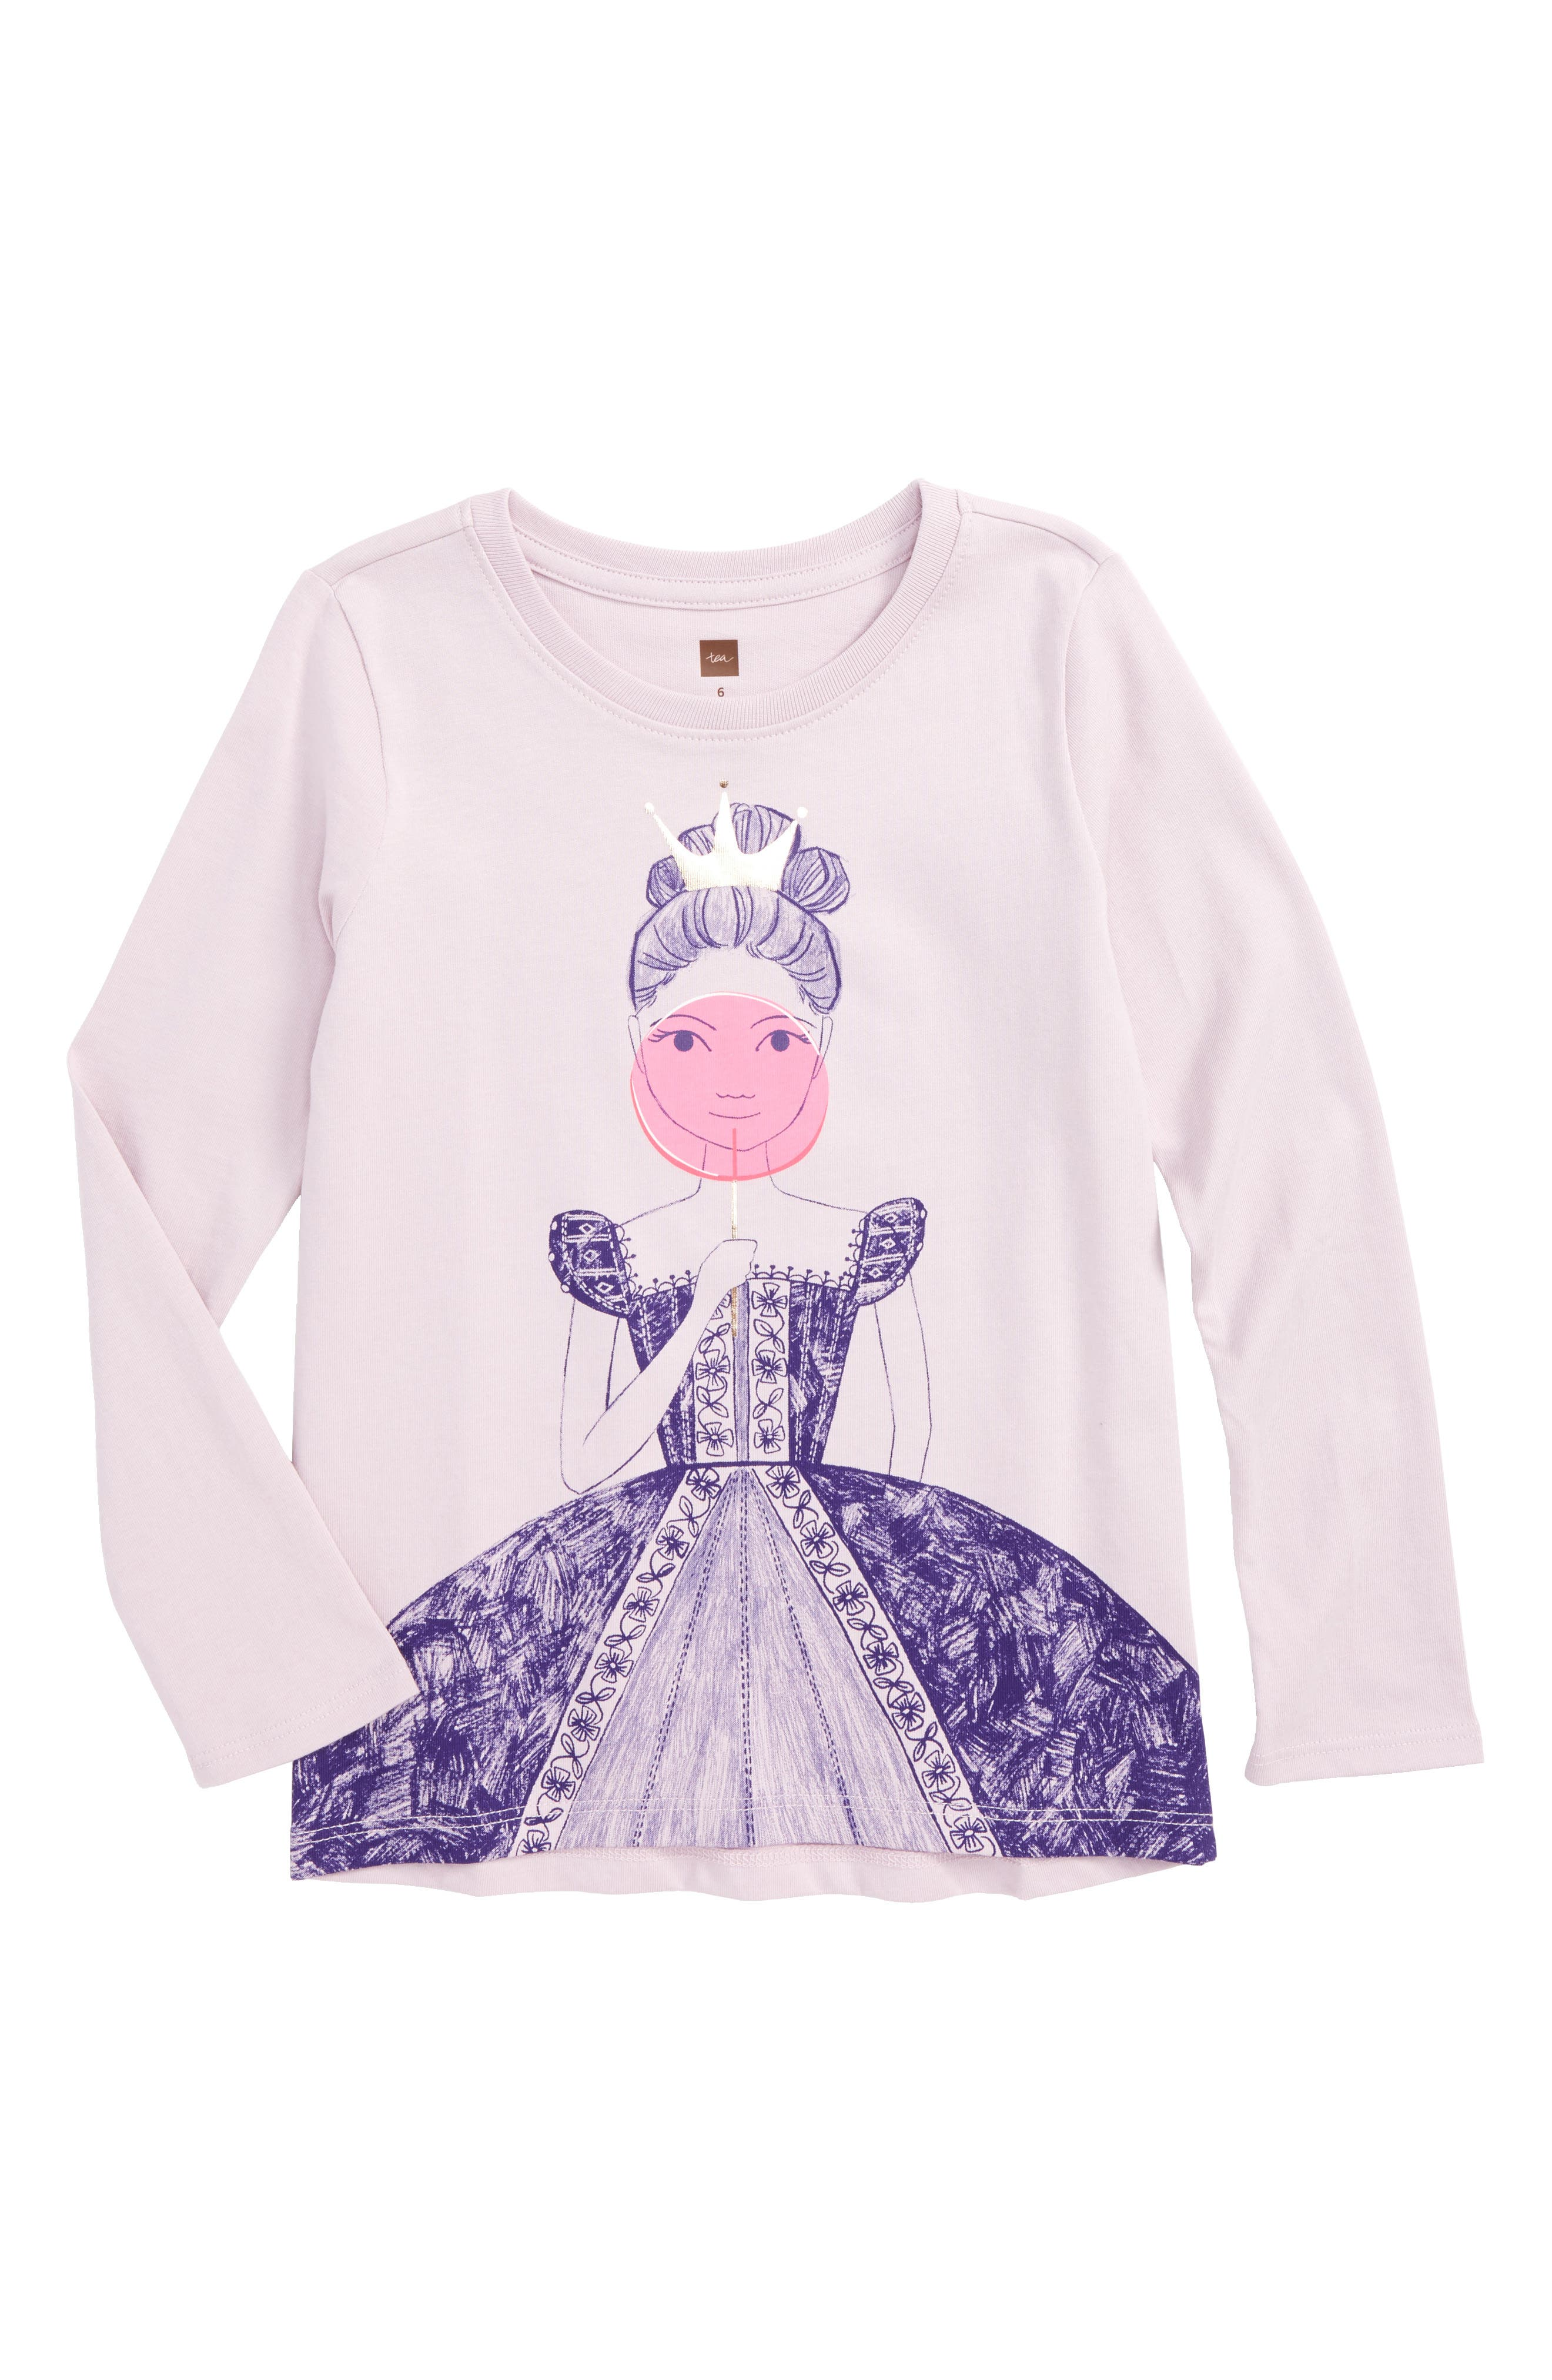 Tea Collection Queen of Scots Graphic Tee (Toddler Girls, Little Girls & Big Girls)